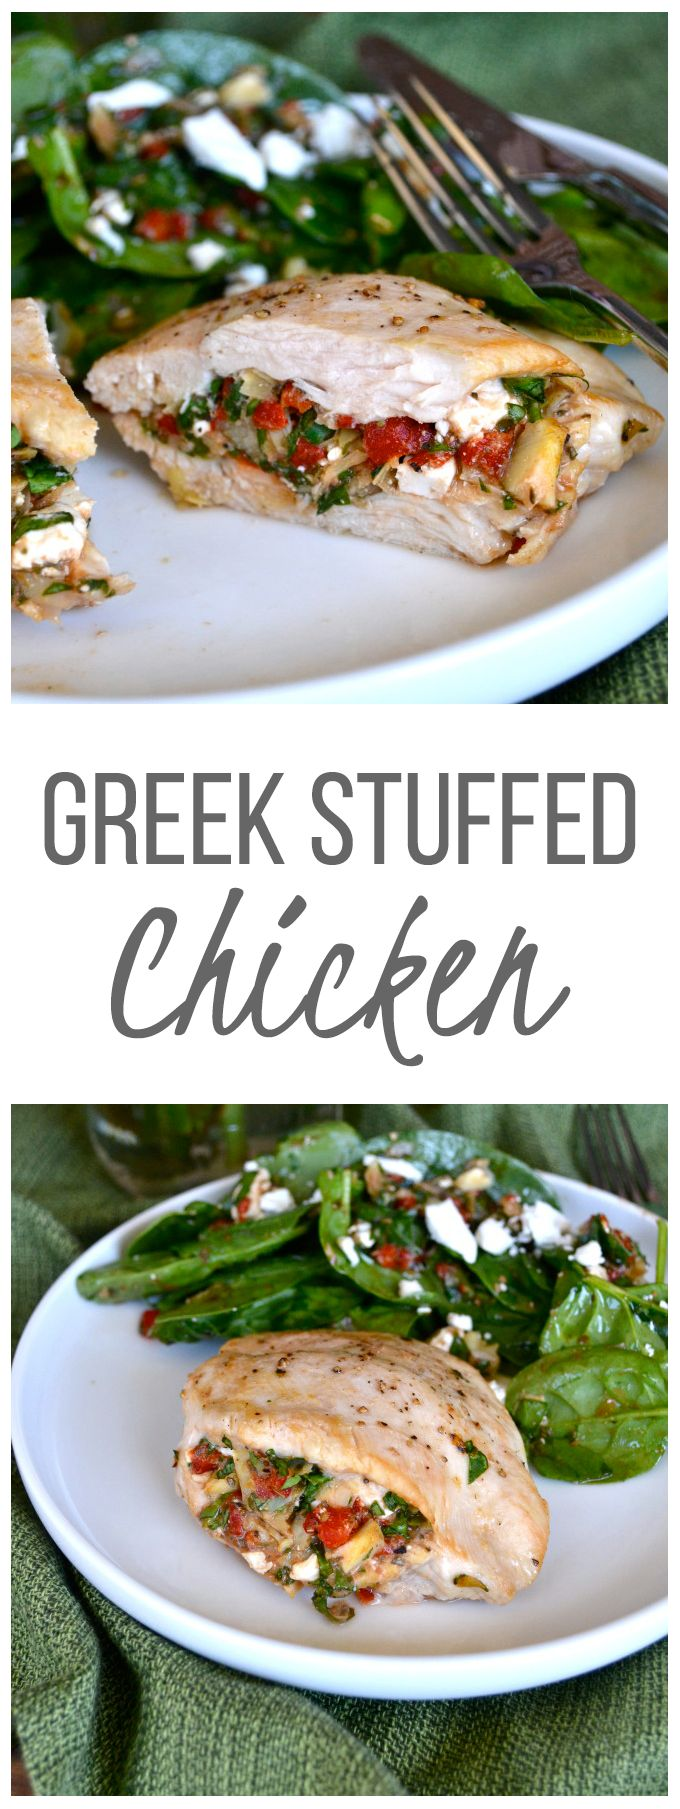 Greek Stuffed Chicken - A great simple chicken breast recipe filled with real food goodness!